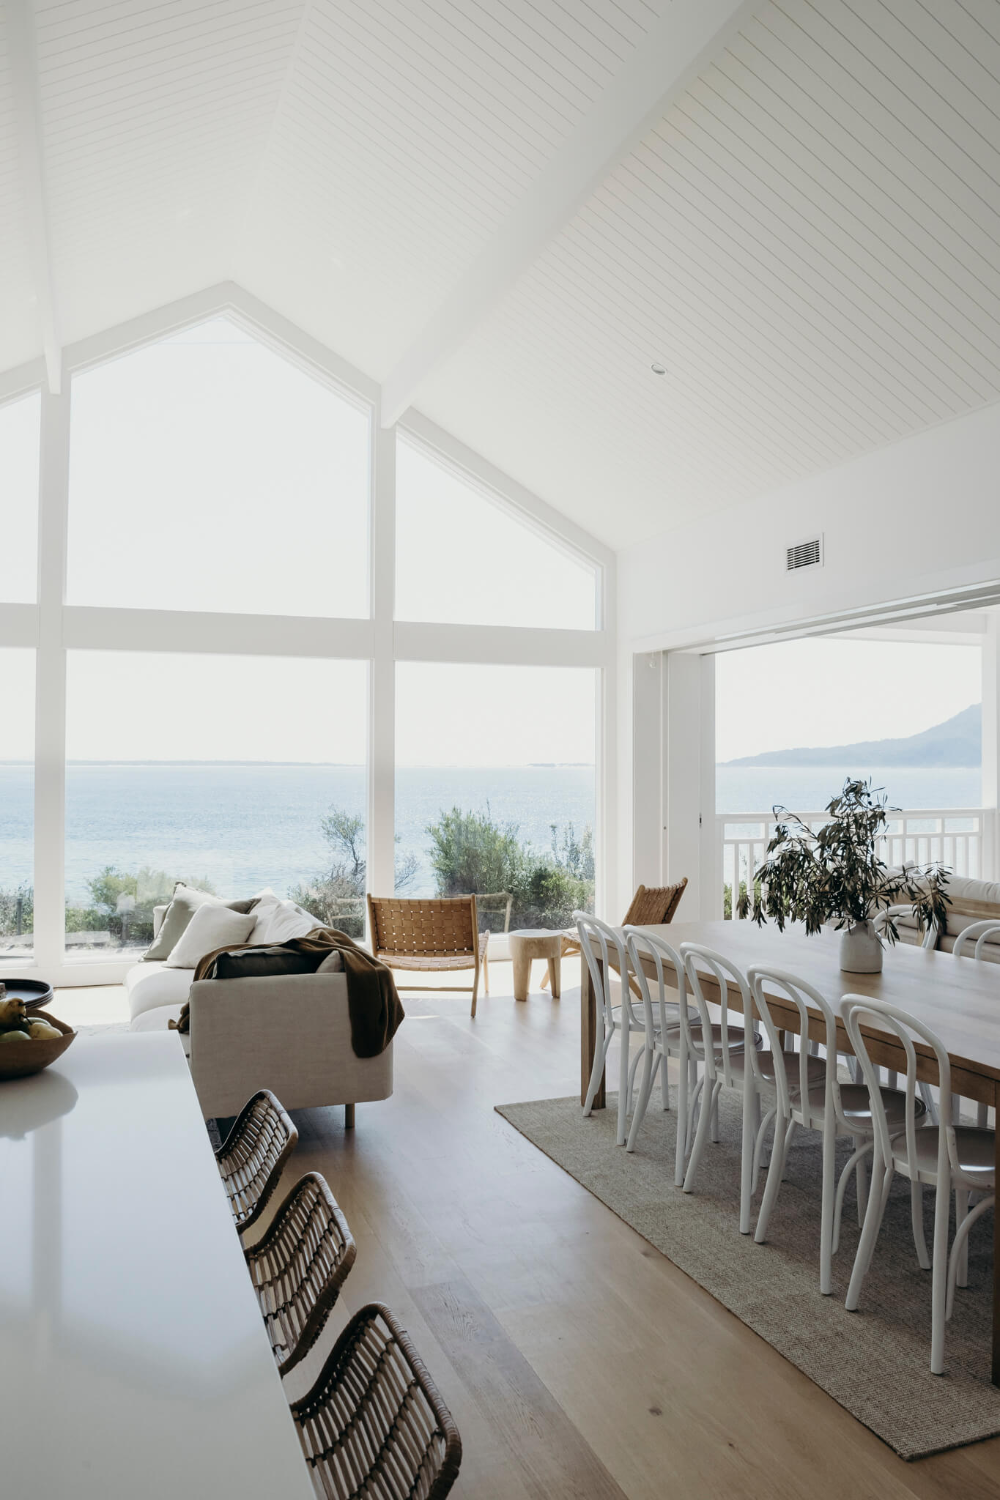 House with a view - natural family beach house in Shoal bay